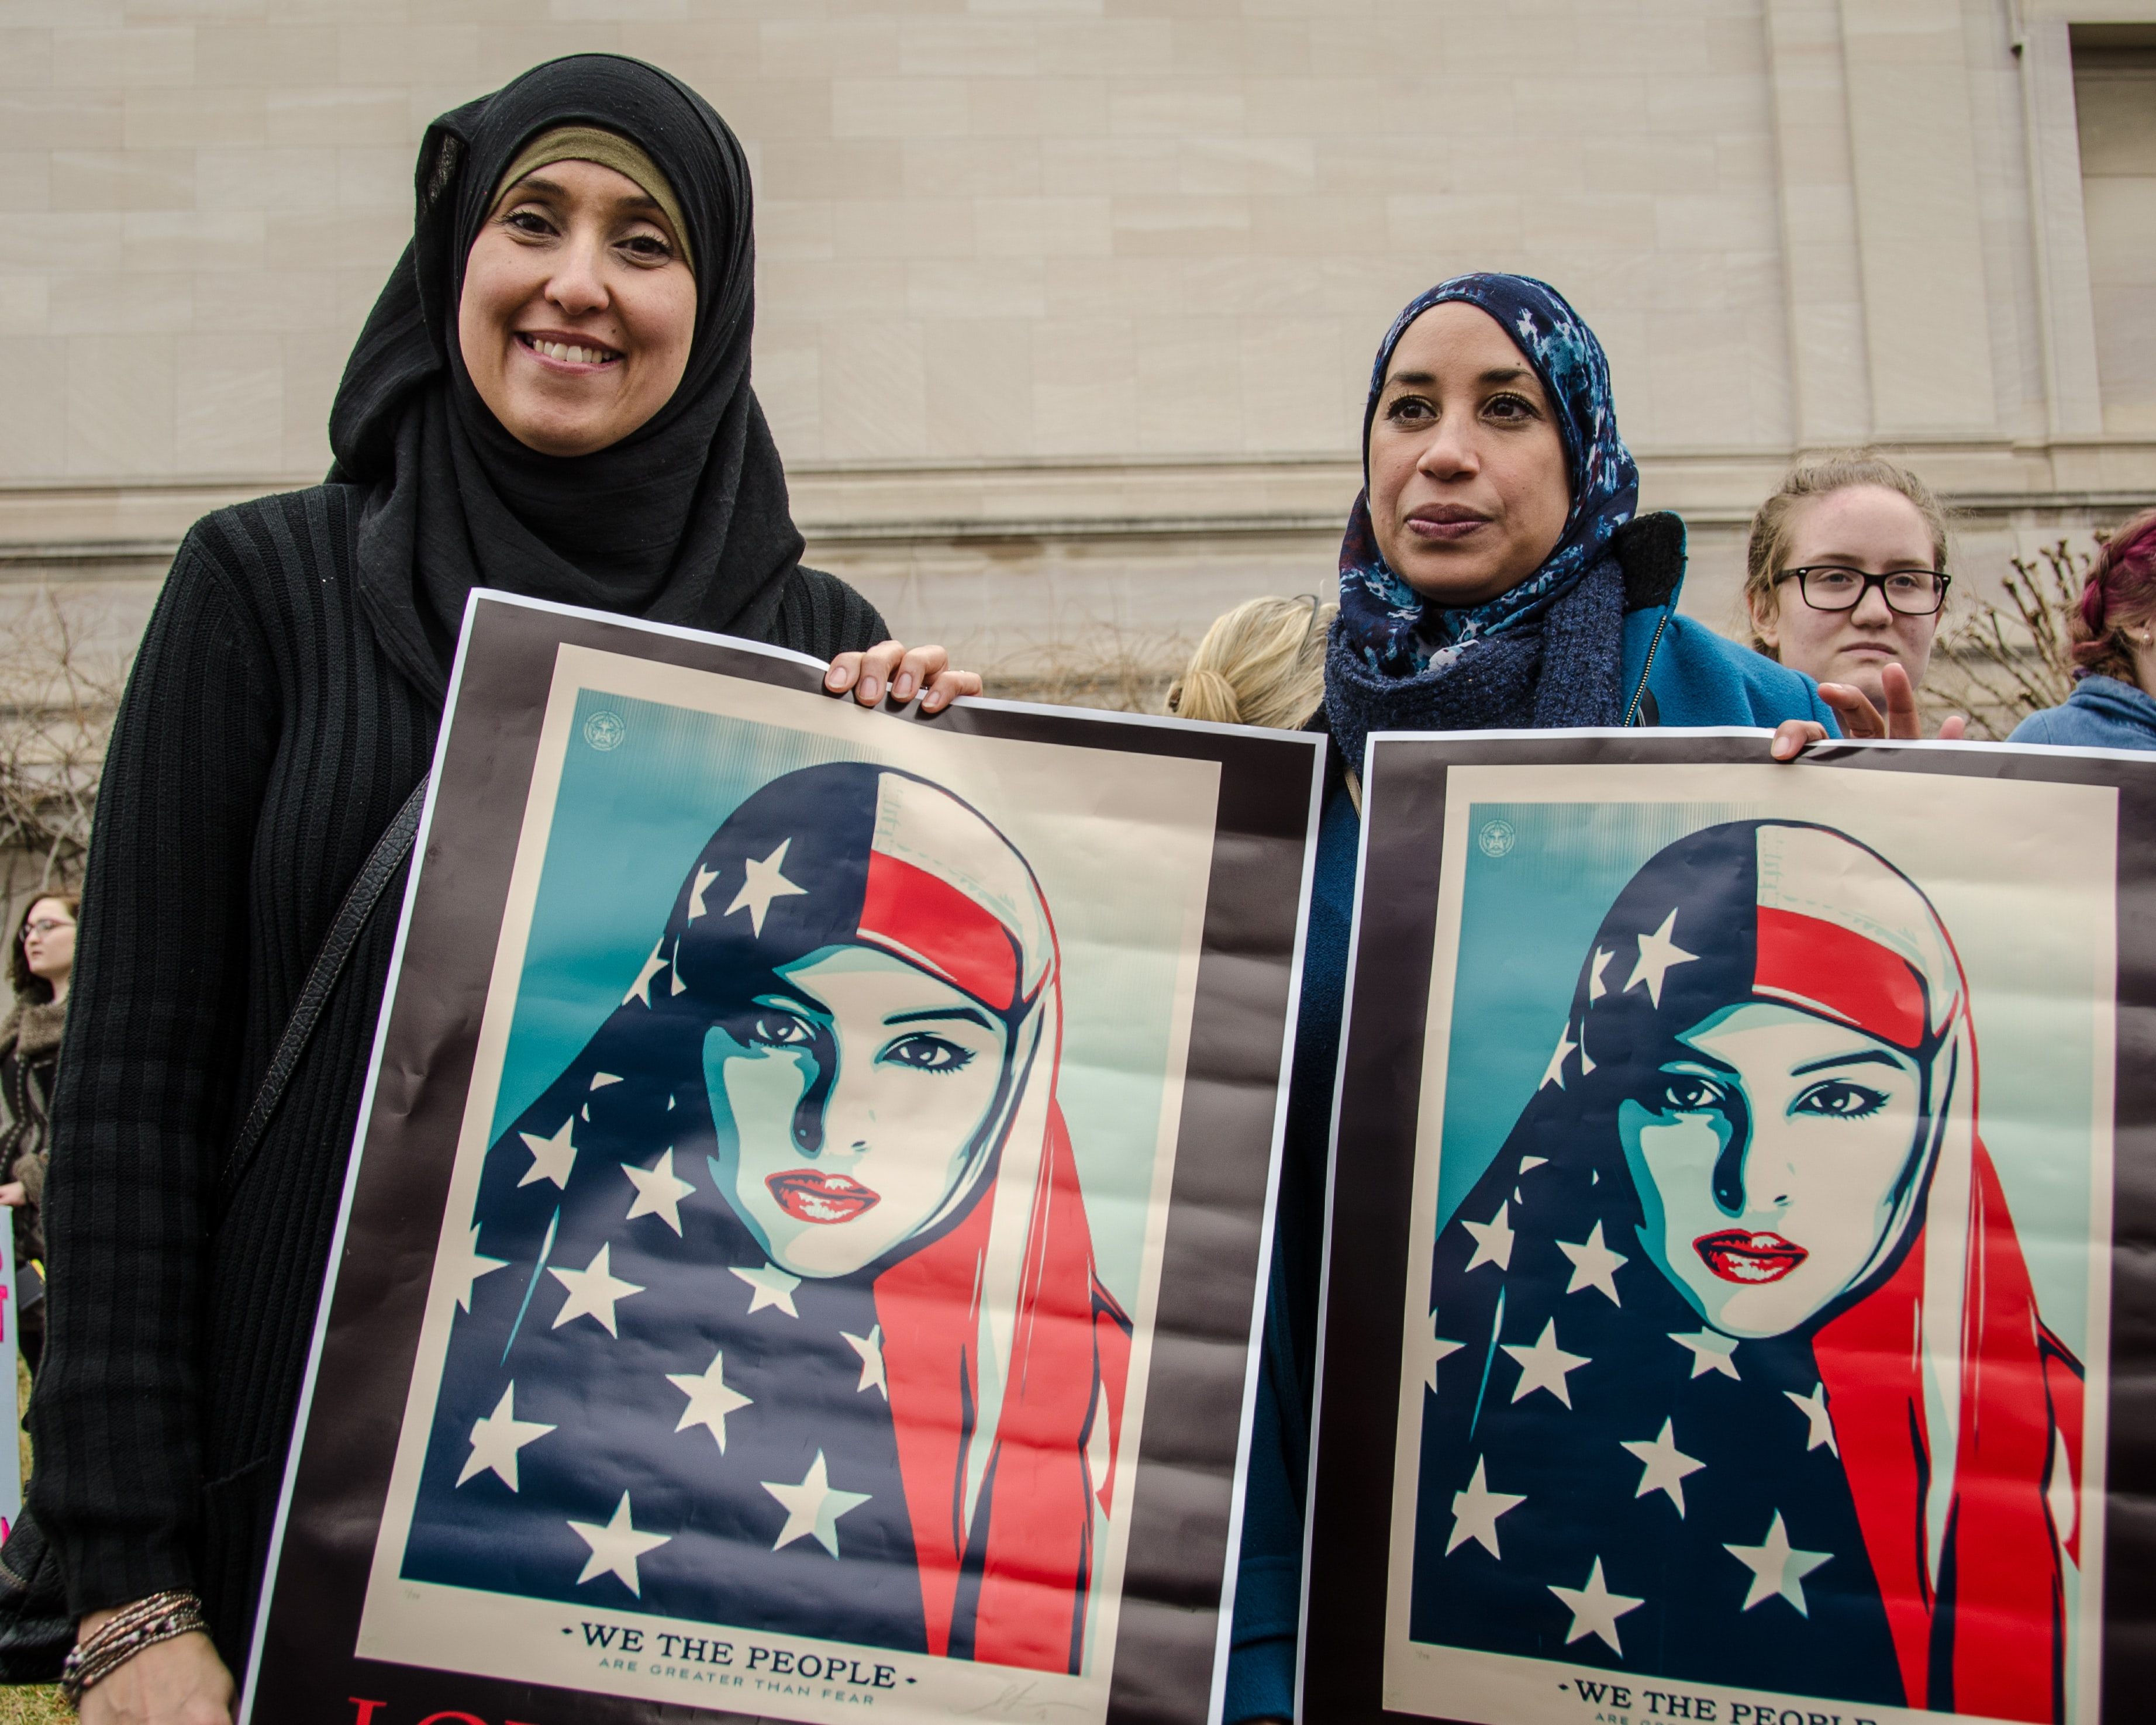 Two women in hijabs hold posters of an American Muslim woman at a march on Washington